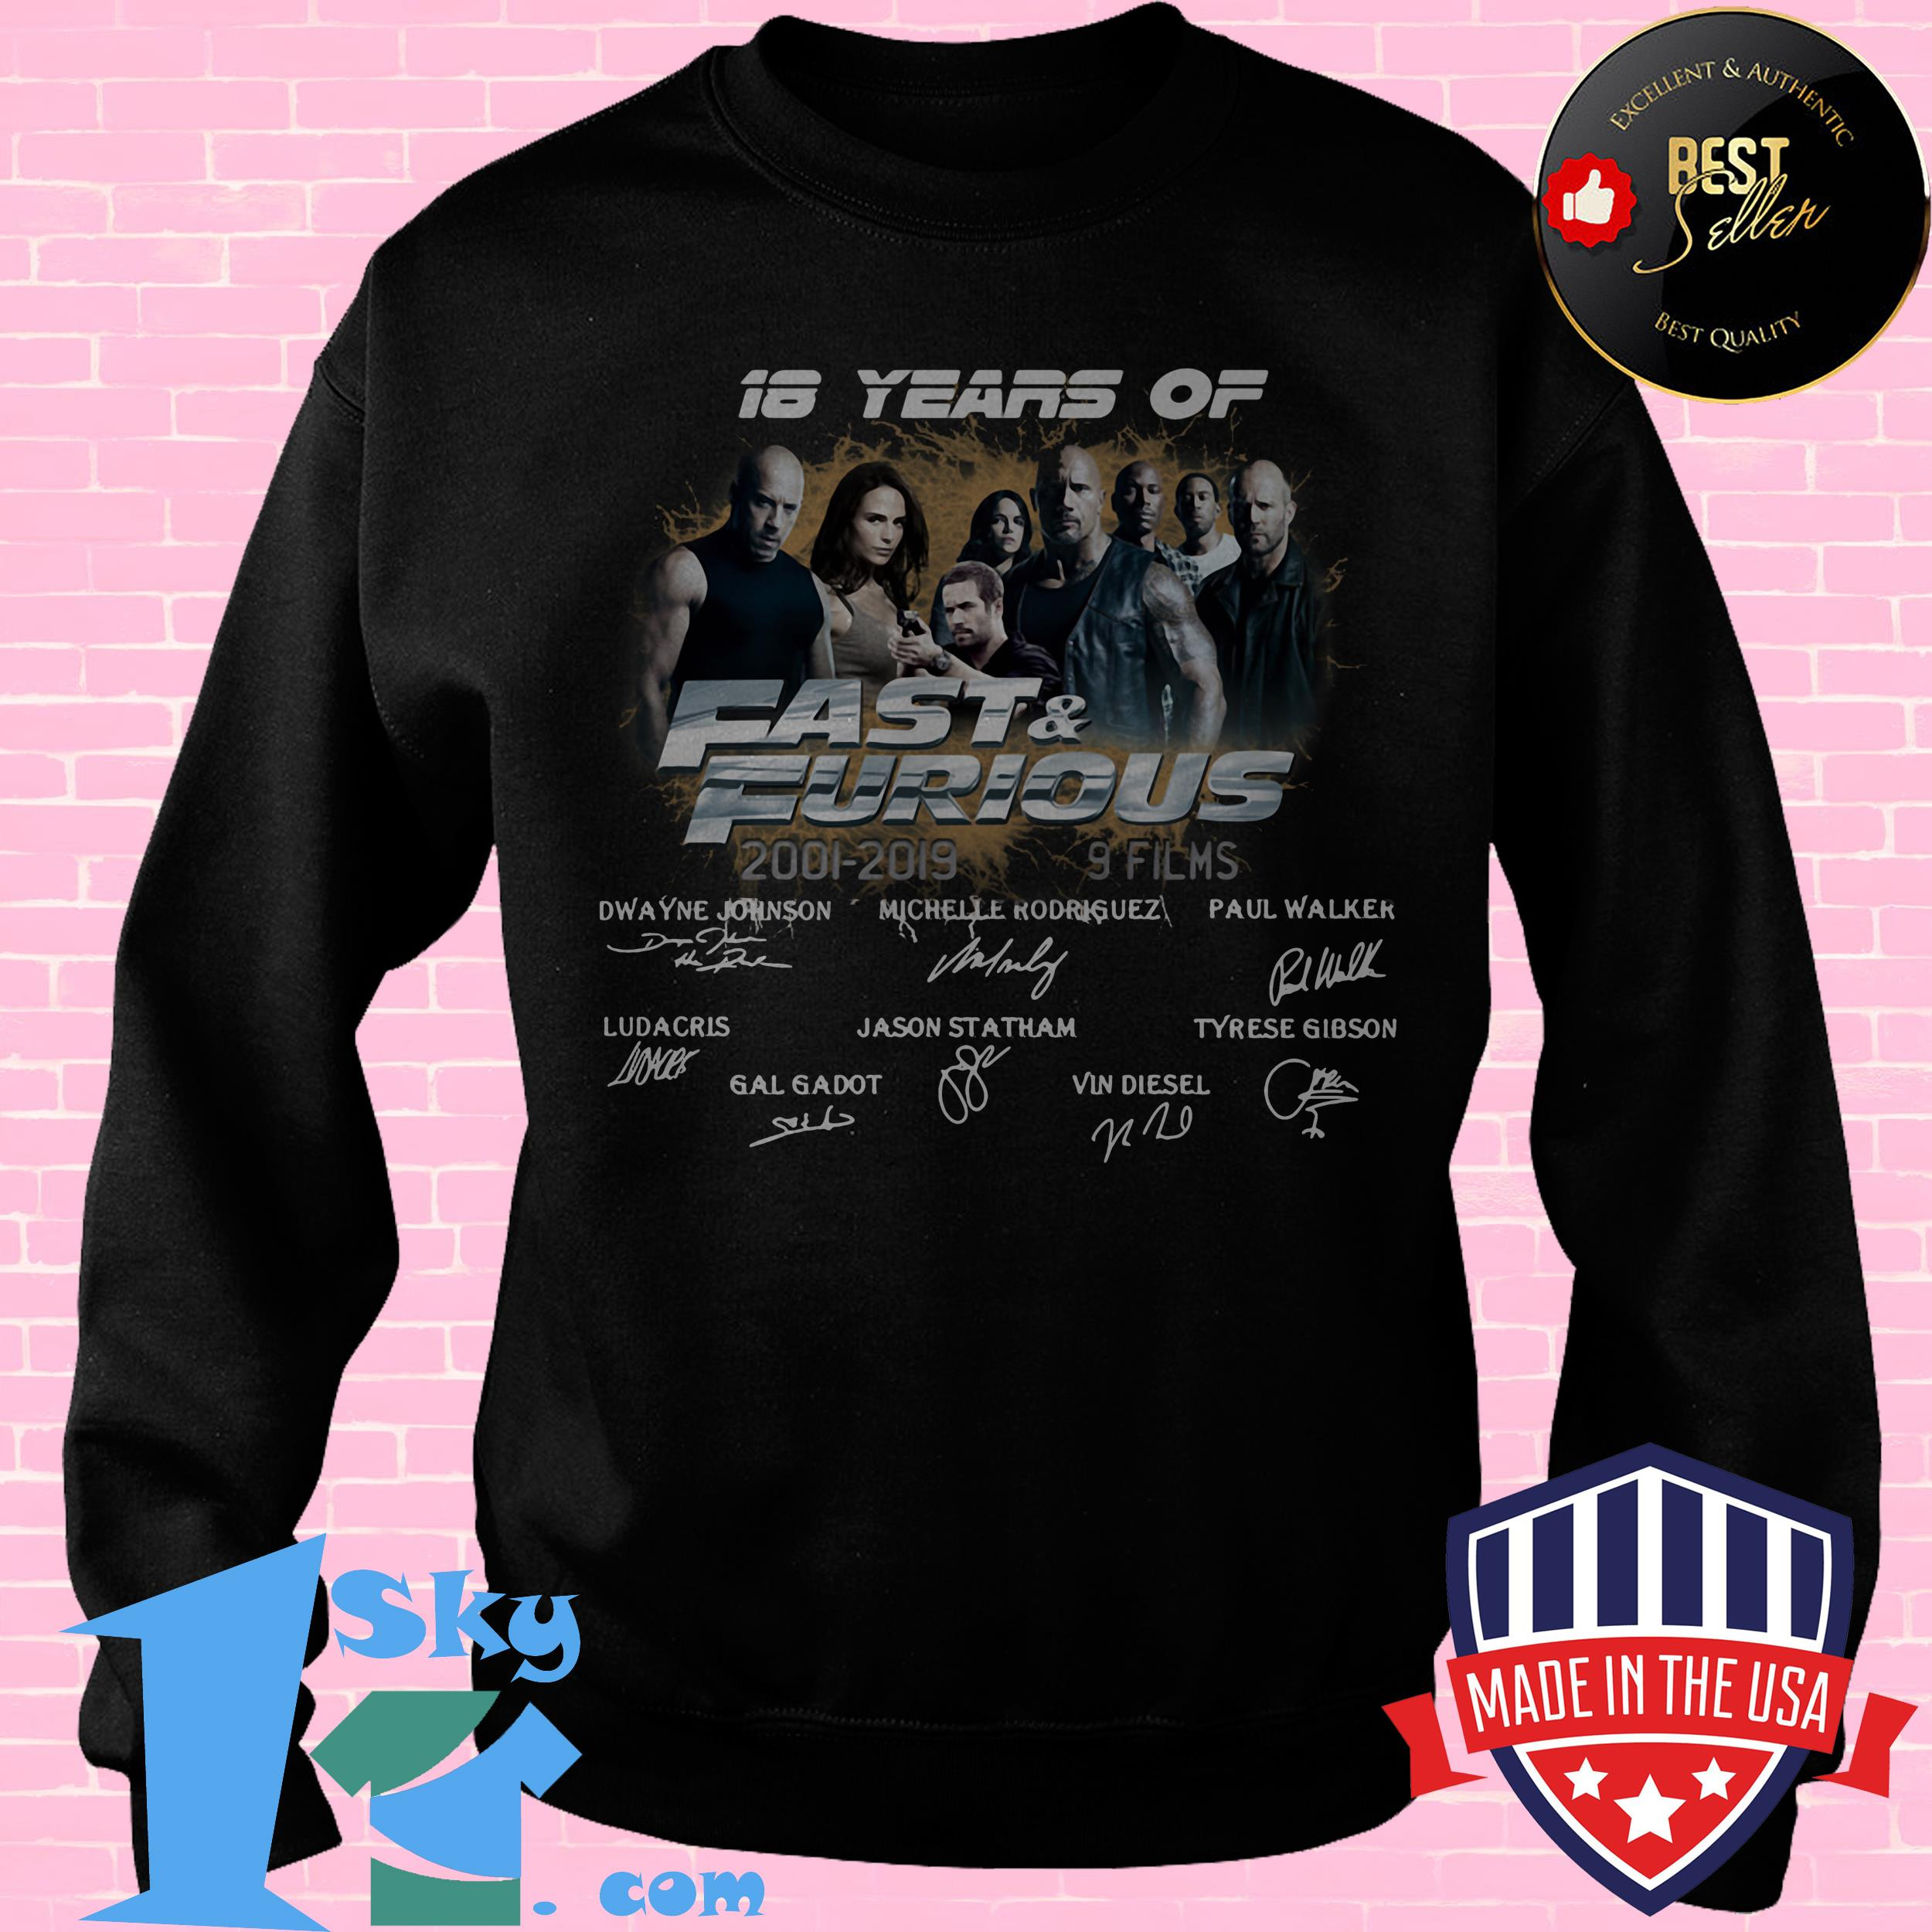 18 years of fast furious 2001 2019 8 films signature sweatshirt - 18 Years Of Fast & Furious 2001-2019 8 Films Signature shirt